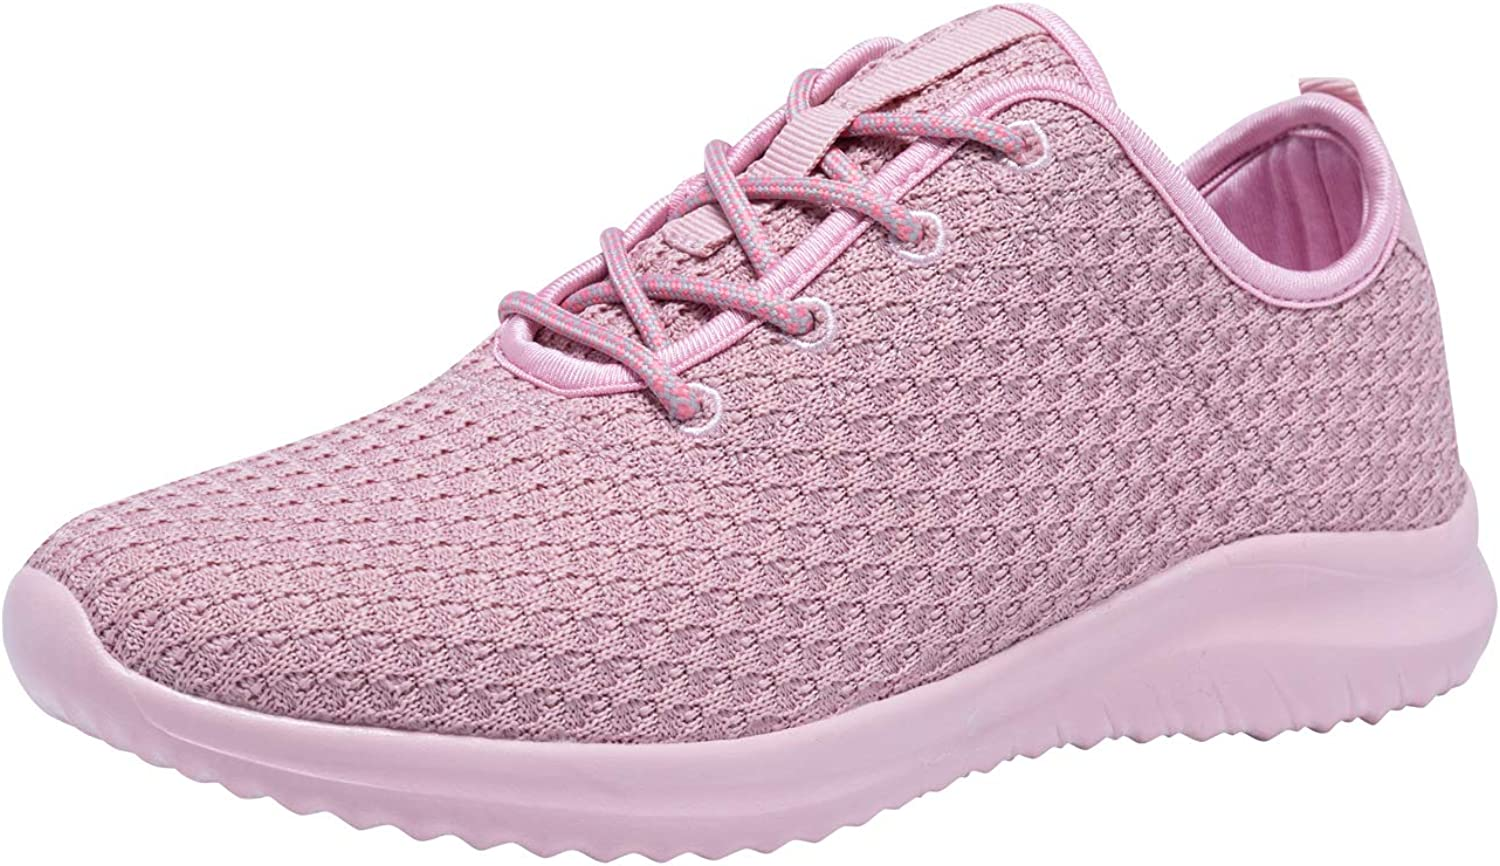 YILAN Women's Fashion Sneakers Breathable Casual Sport shoes